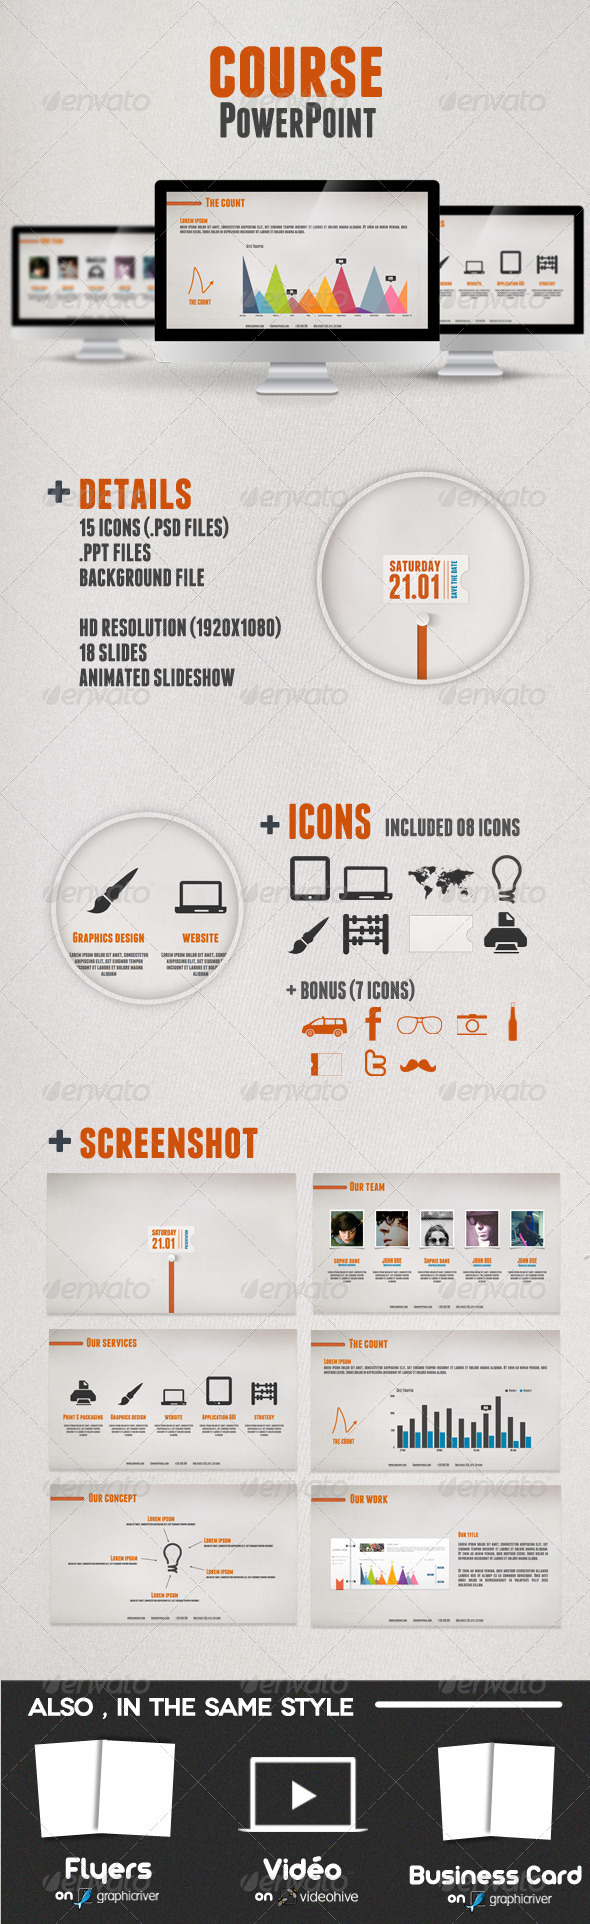 GraphicRiver Course Presentation Powerpoint 1273699